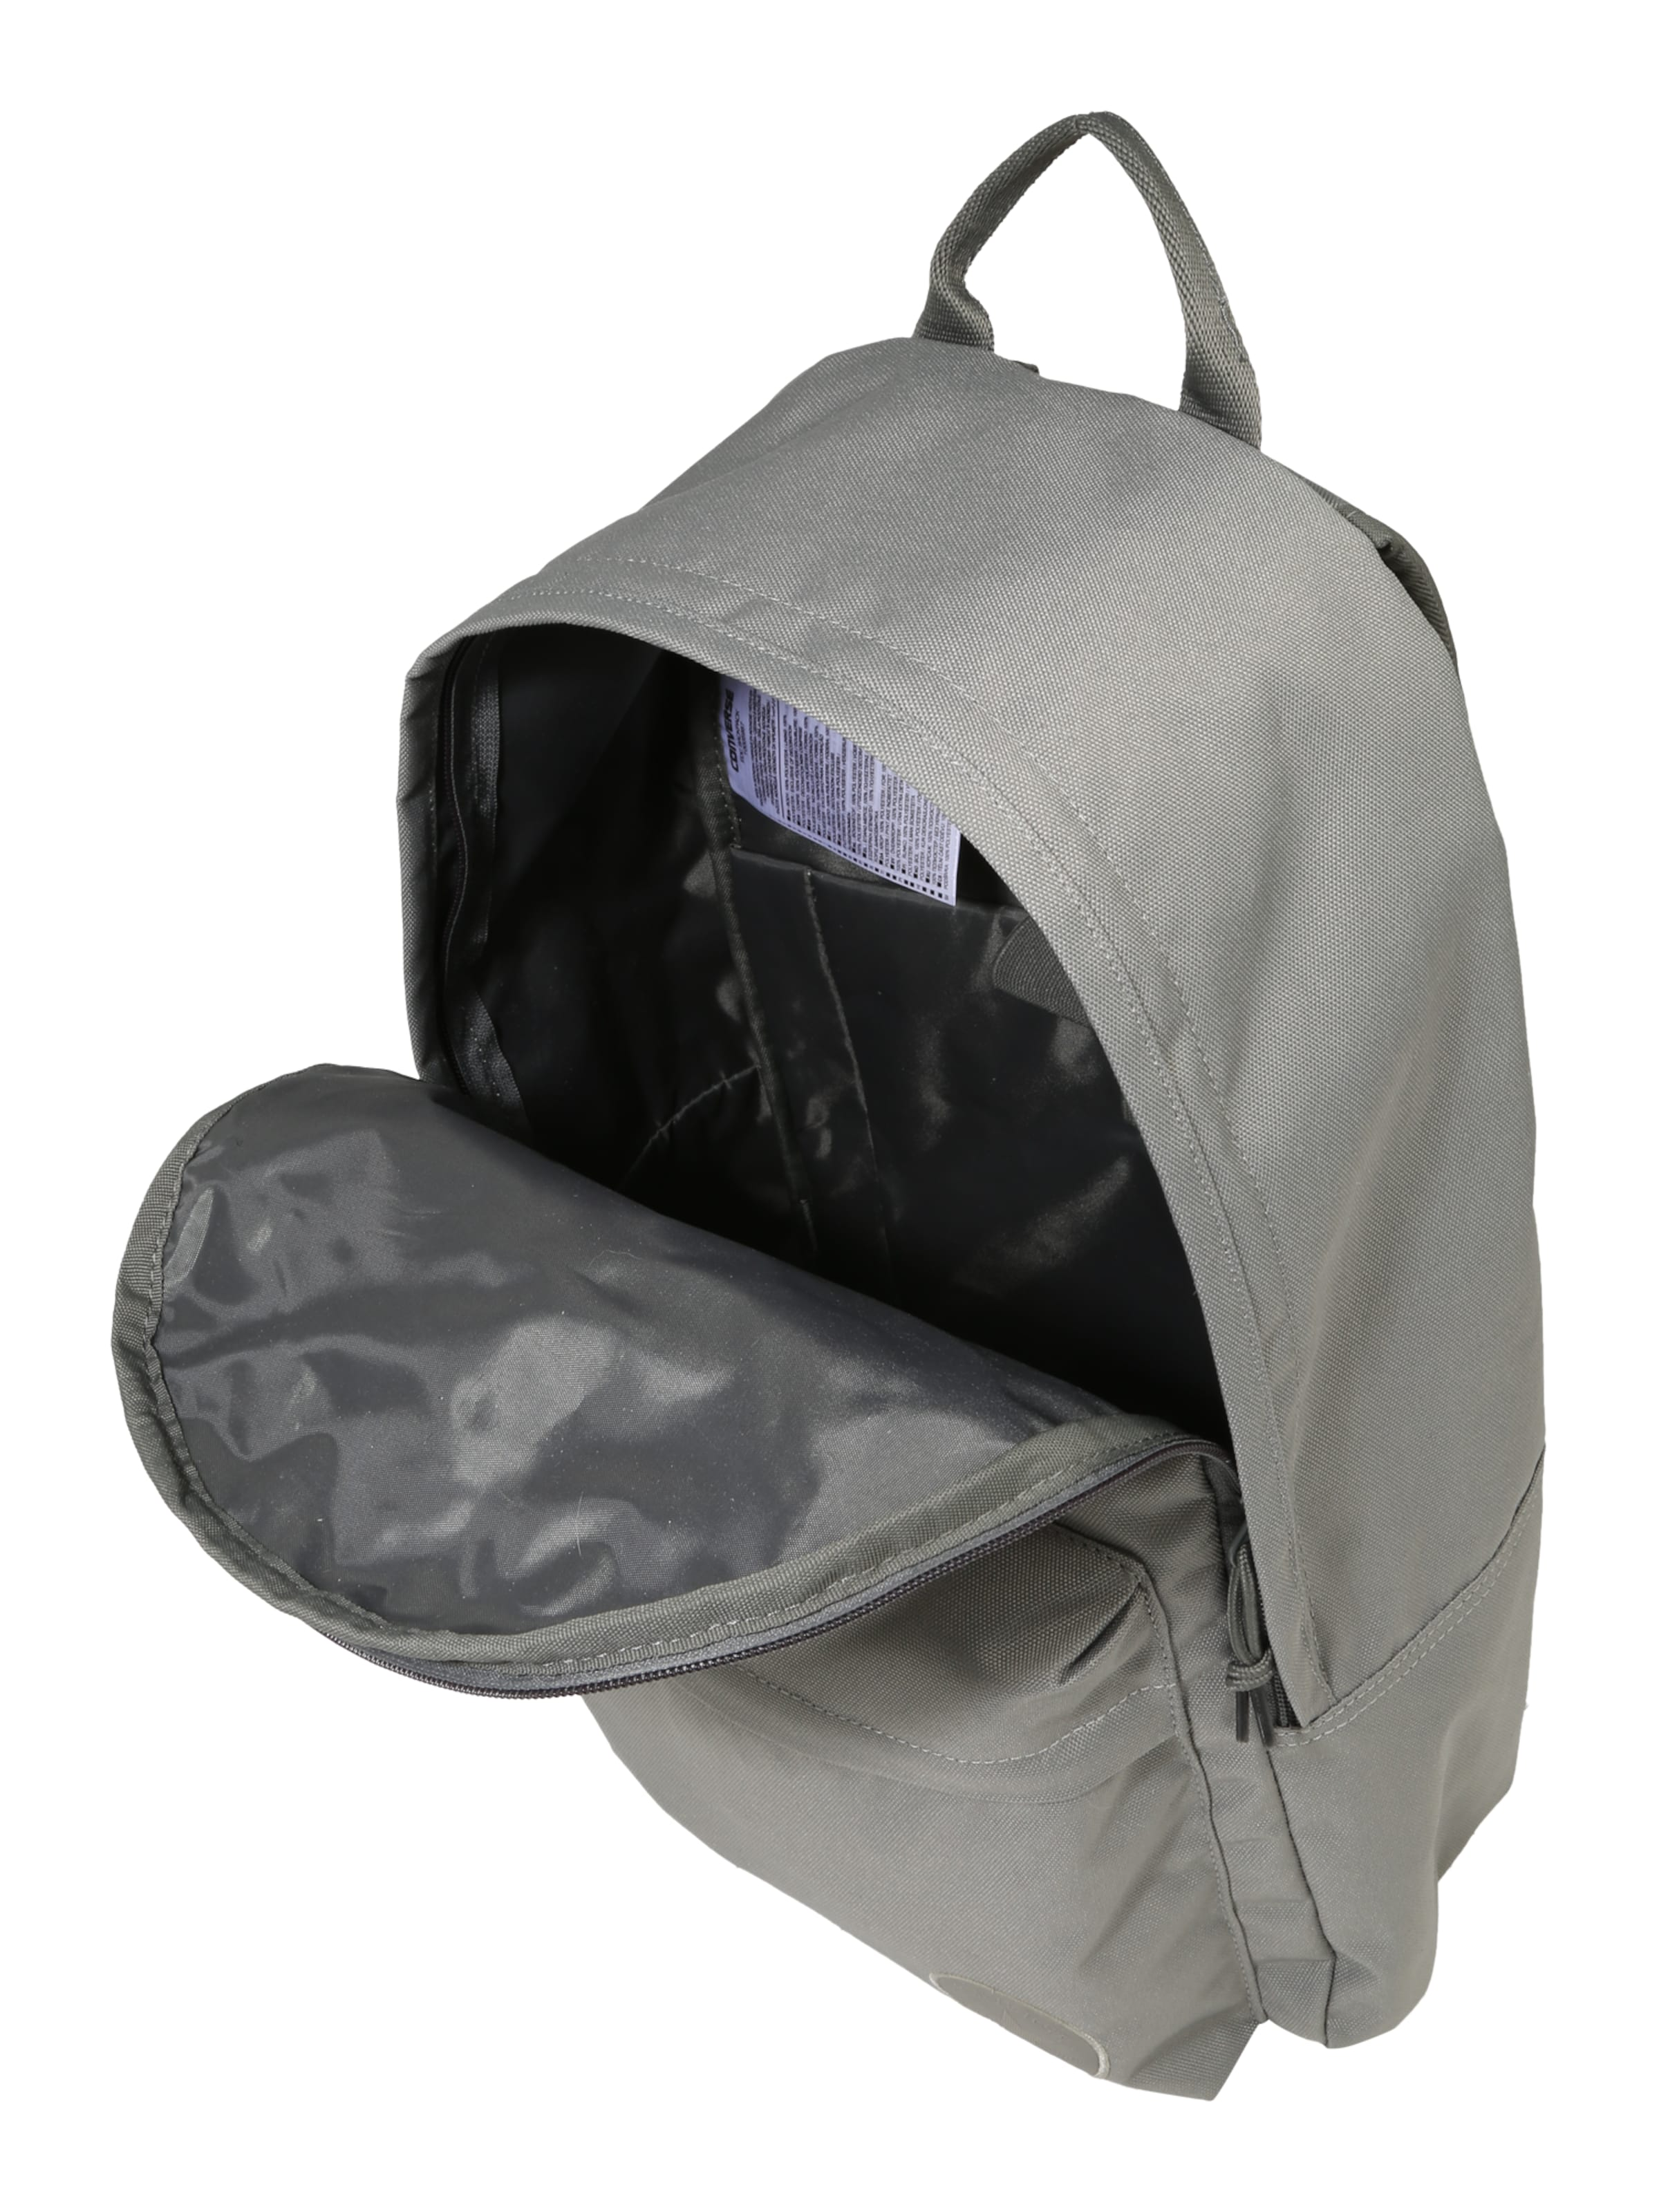 CONVERSE Rucksack 'EDC' Bester Lieferant syXqS